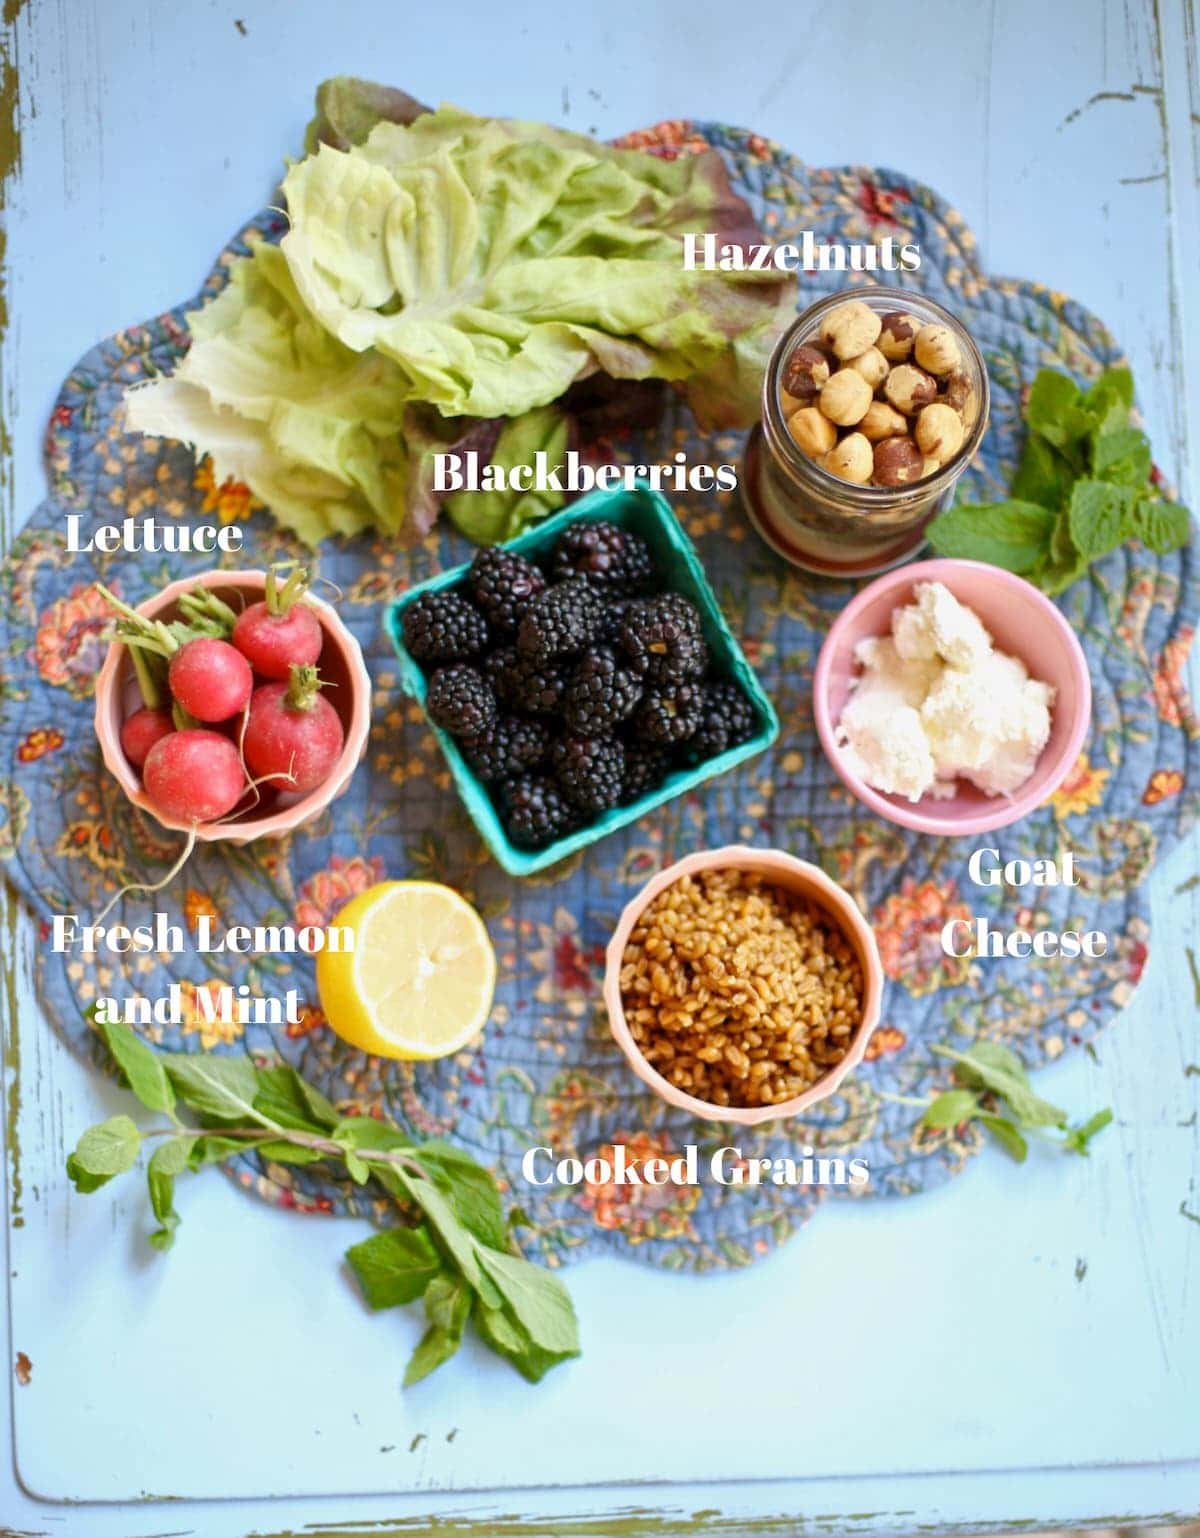 Ingredients for blackberry salad with white text overlay on a blue fabric place mat.